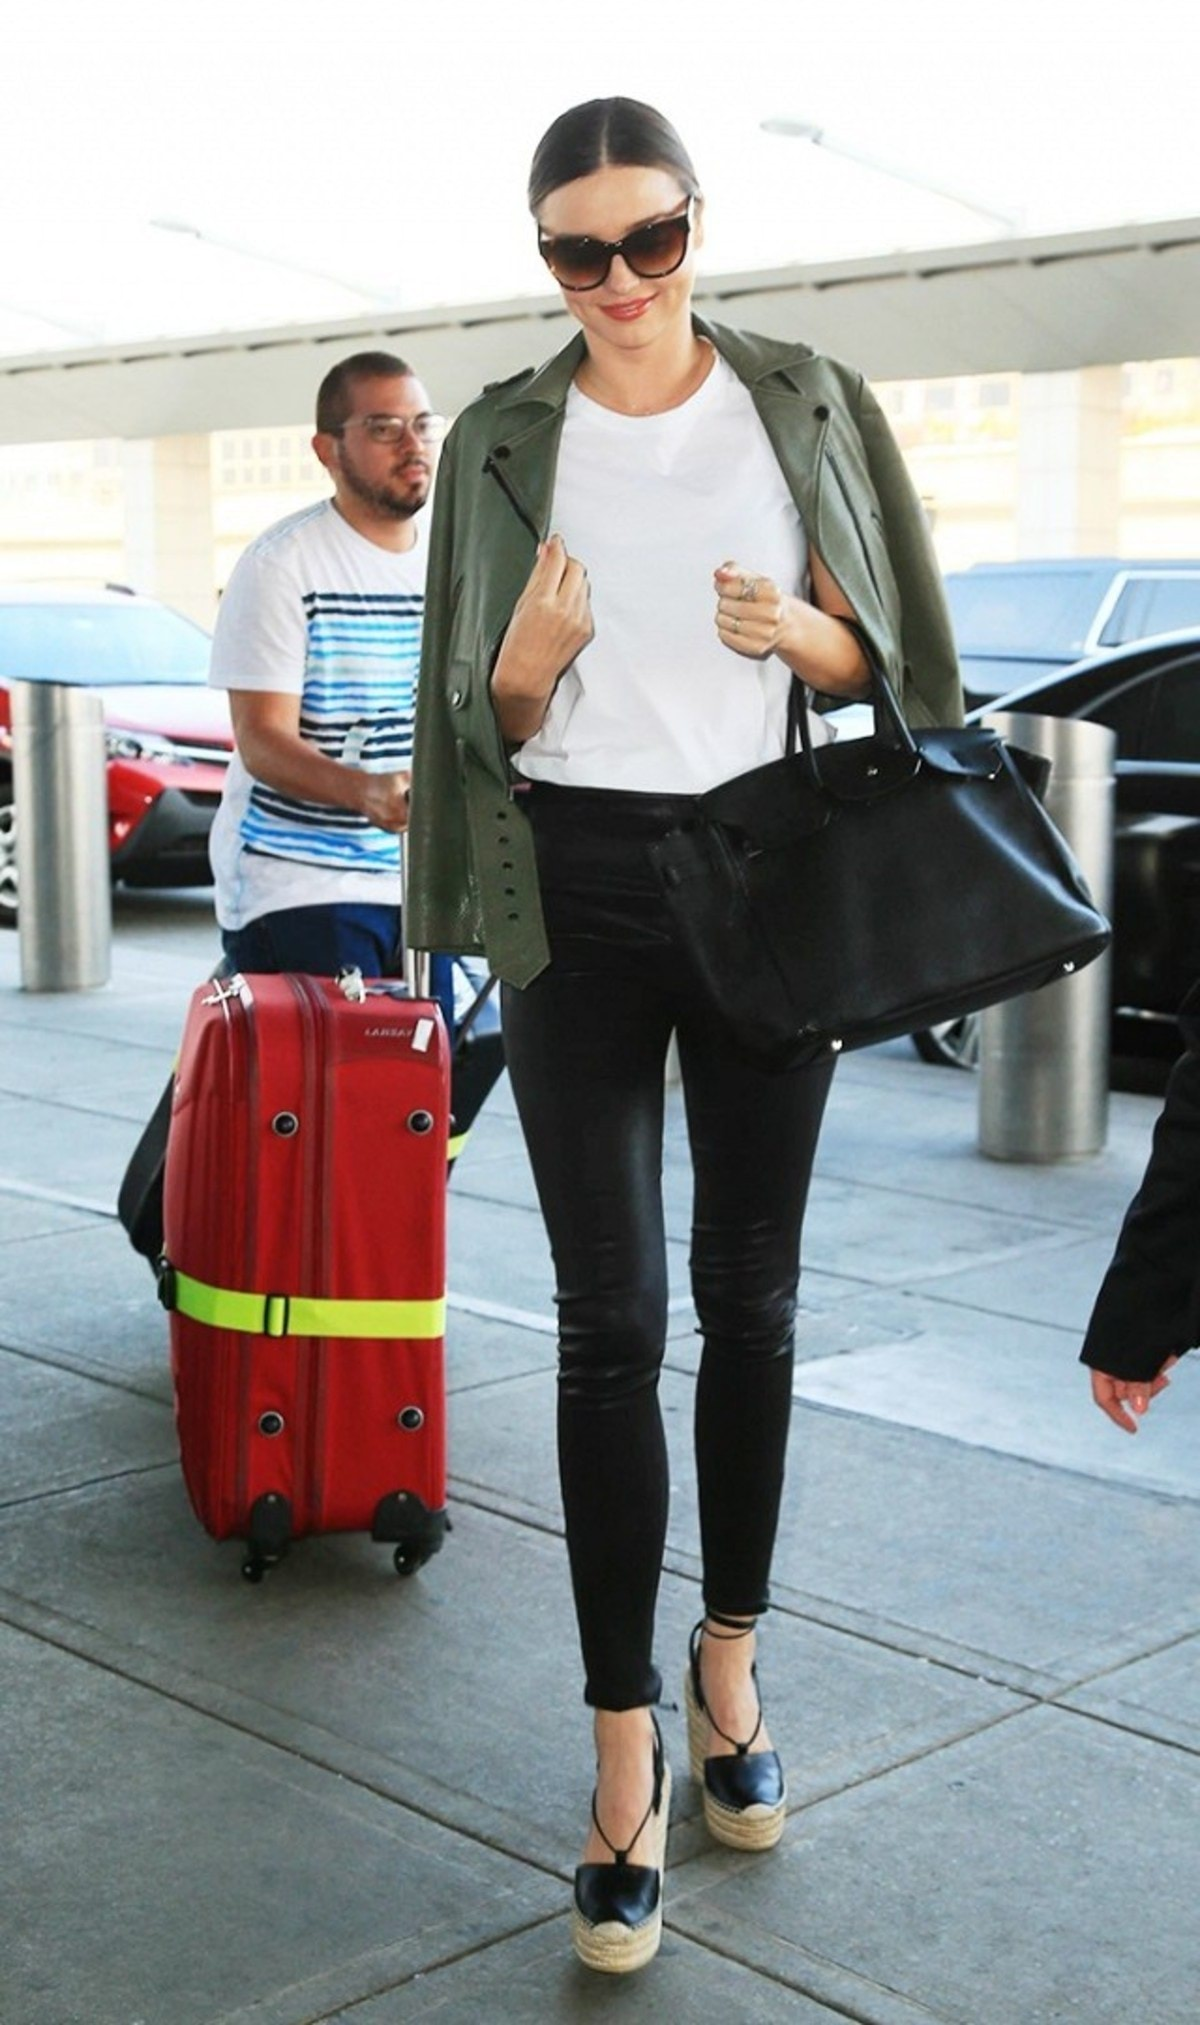 7-summer-airport-outfits-you-already-own-1808605-1466120028.640x0c